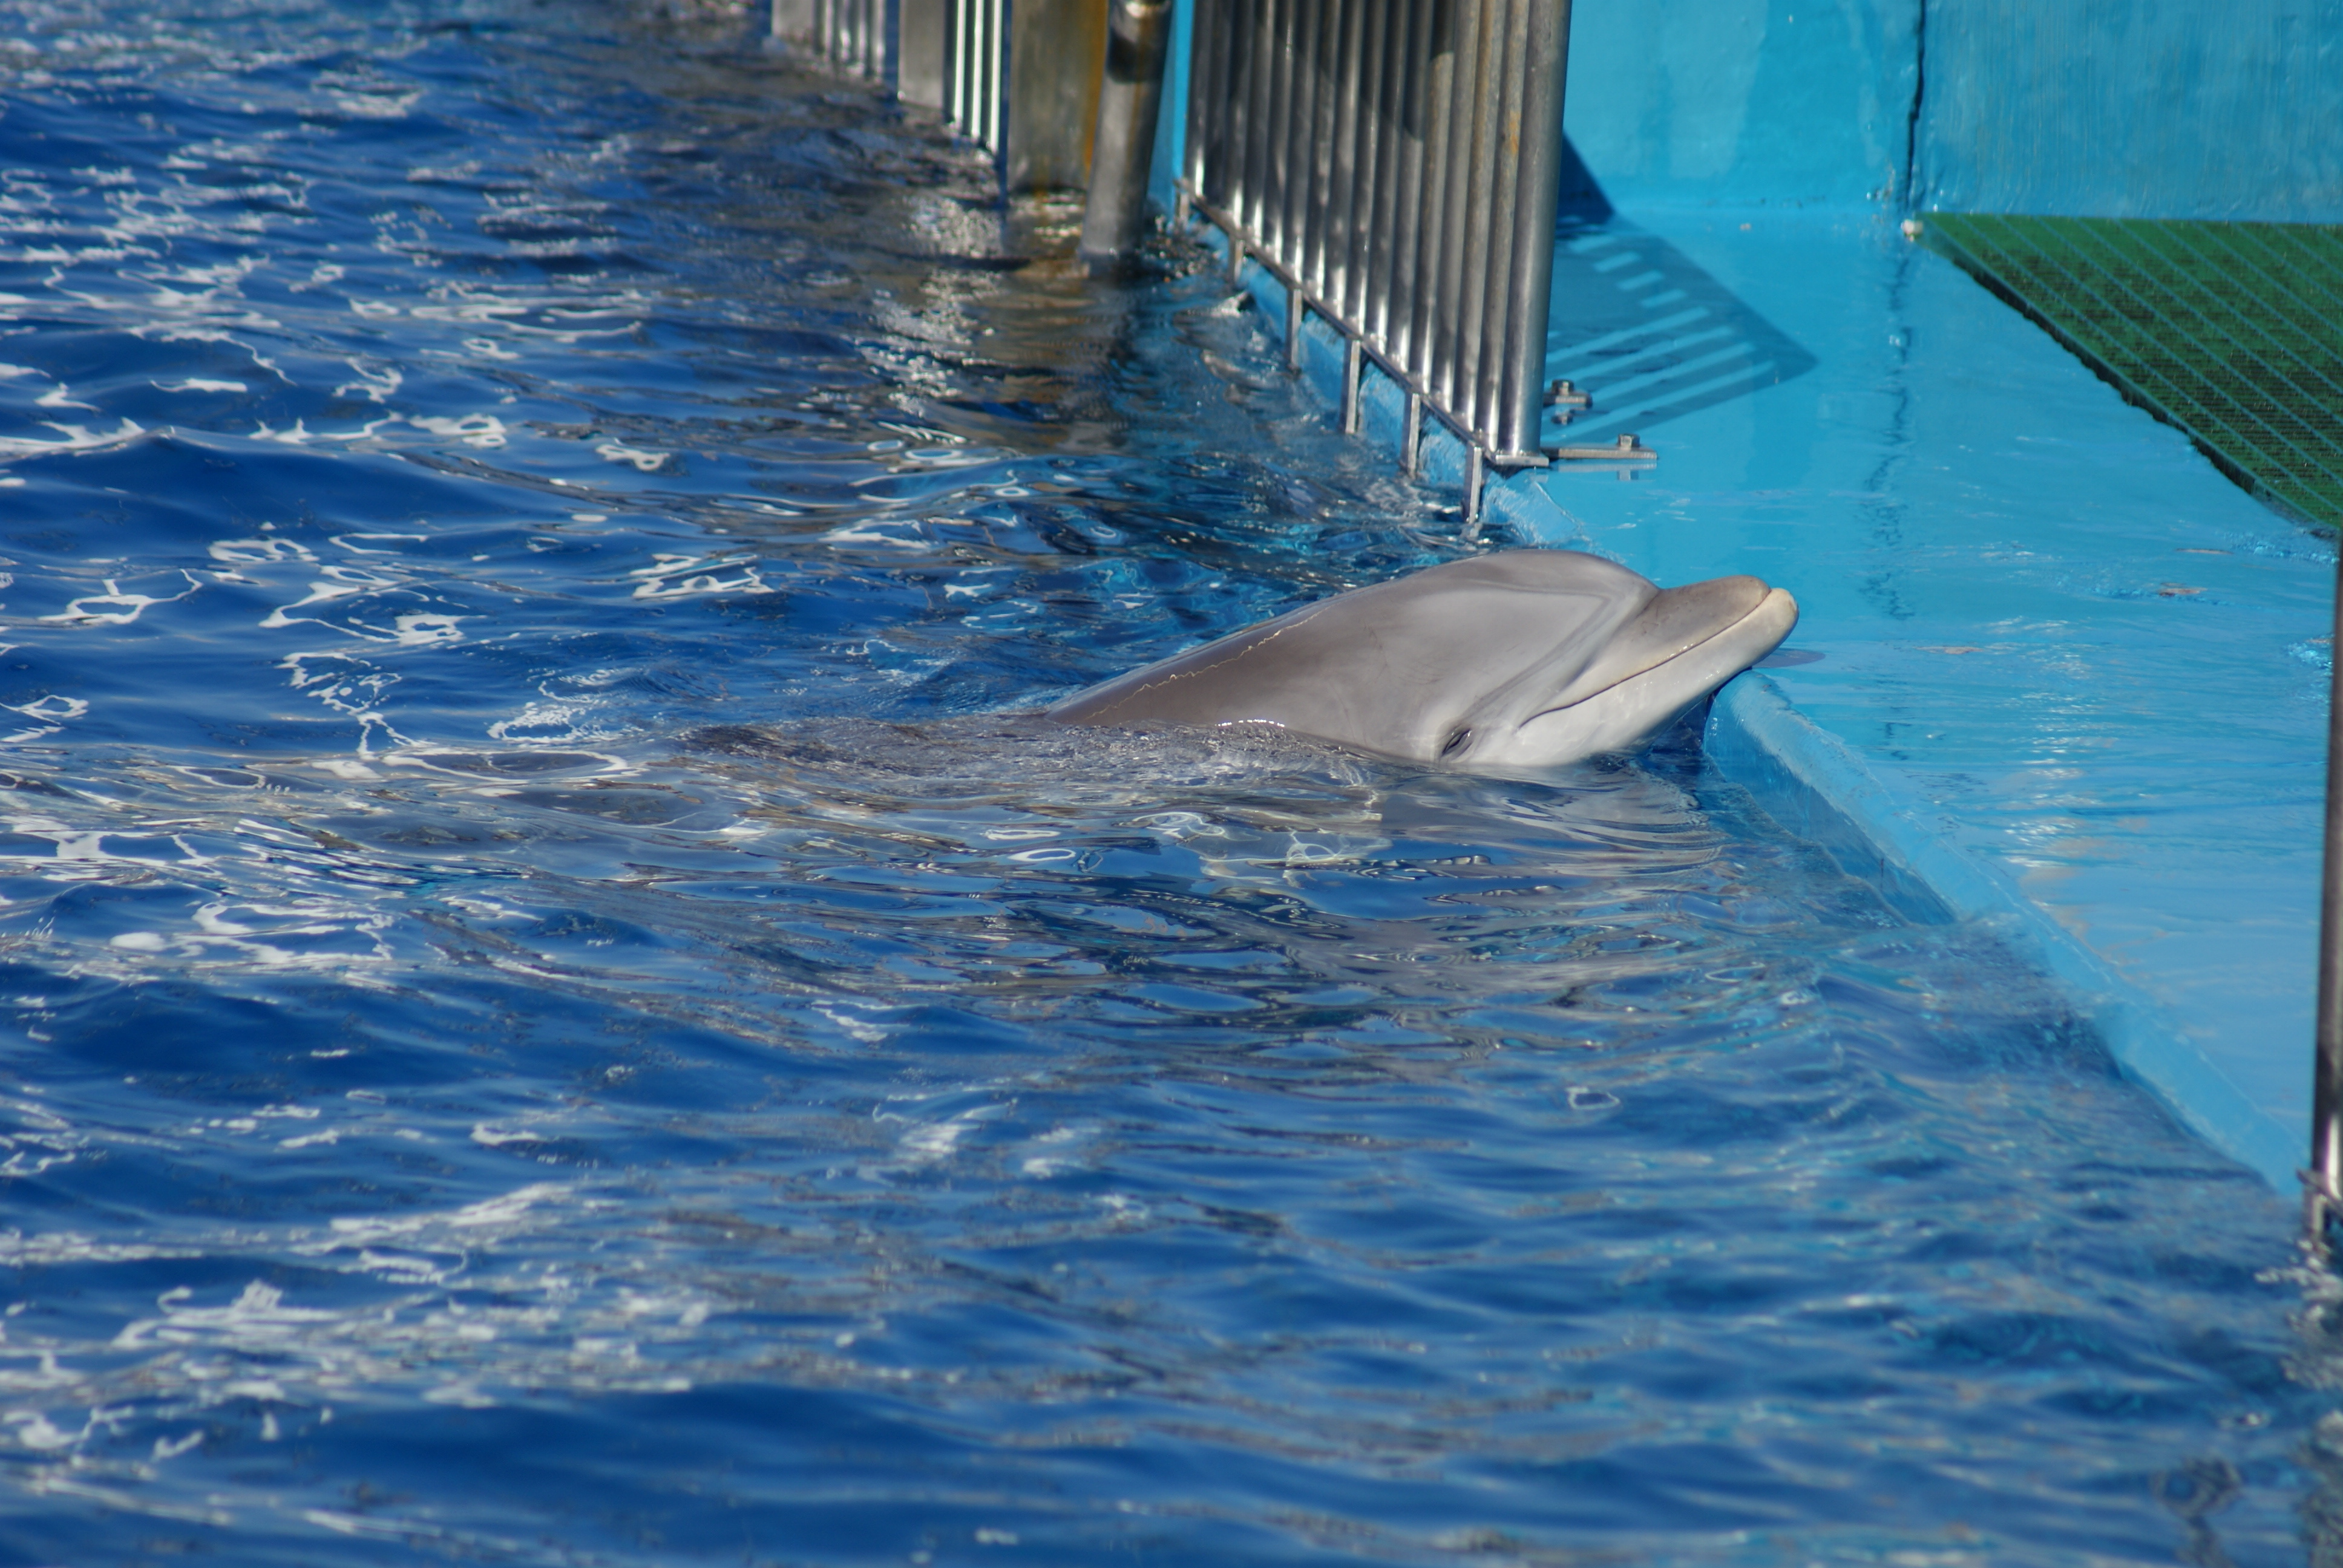 Captive dolphins at water park